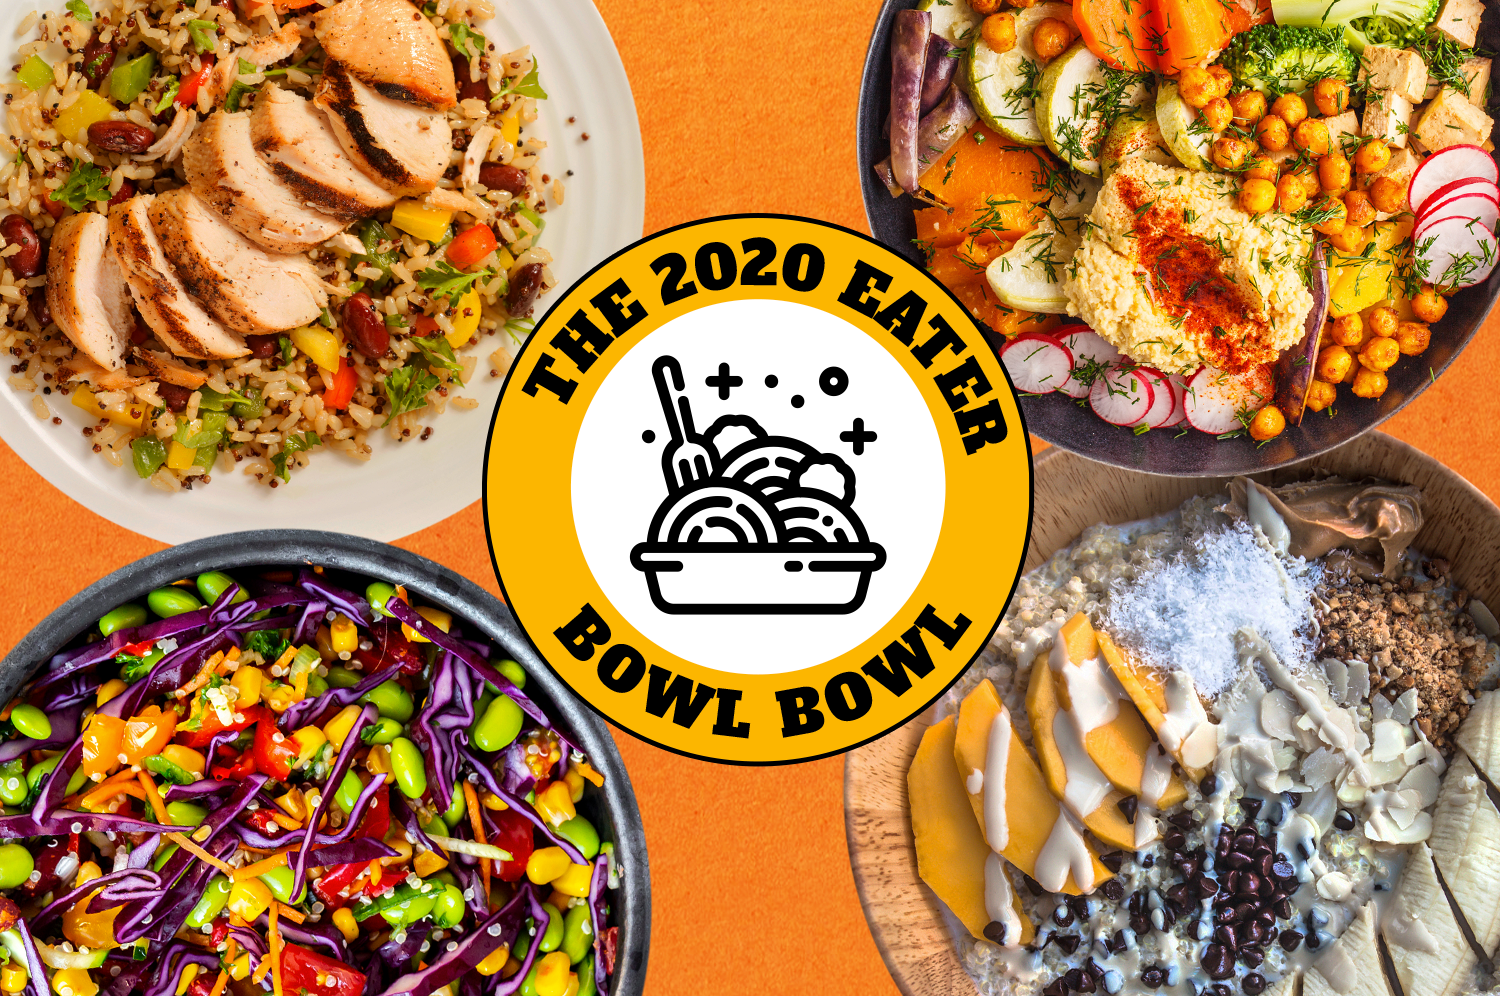 """From above: a chicken and rice bowl, a Mediterranean bowl with chickpeas and hummus, a smoothie bowl with mango slices and coconut, and a colorful veggie bowl with beans and purple cabbage, circled around a badge reading """"The 2020 Eater Bowl Bowl"""" with a black and white bowl drawing in the center."""